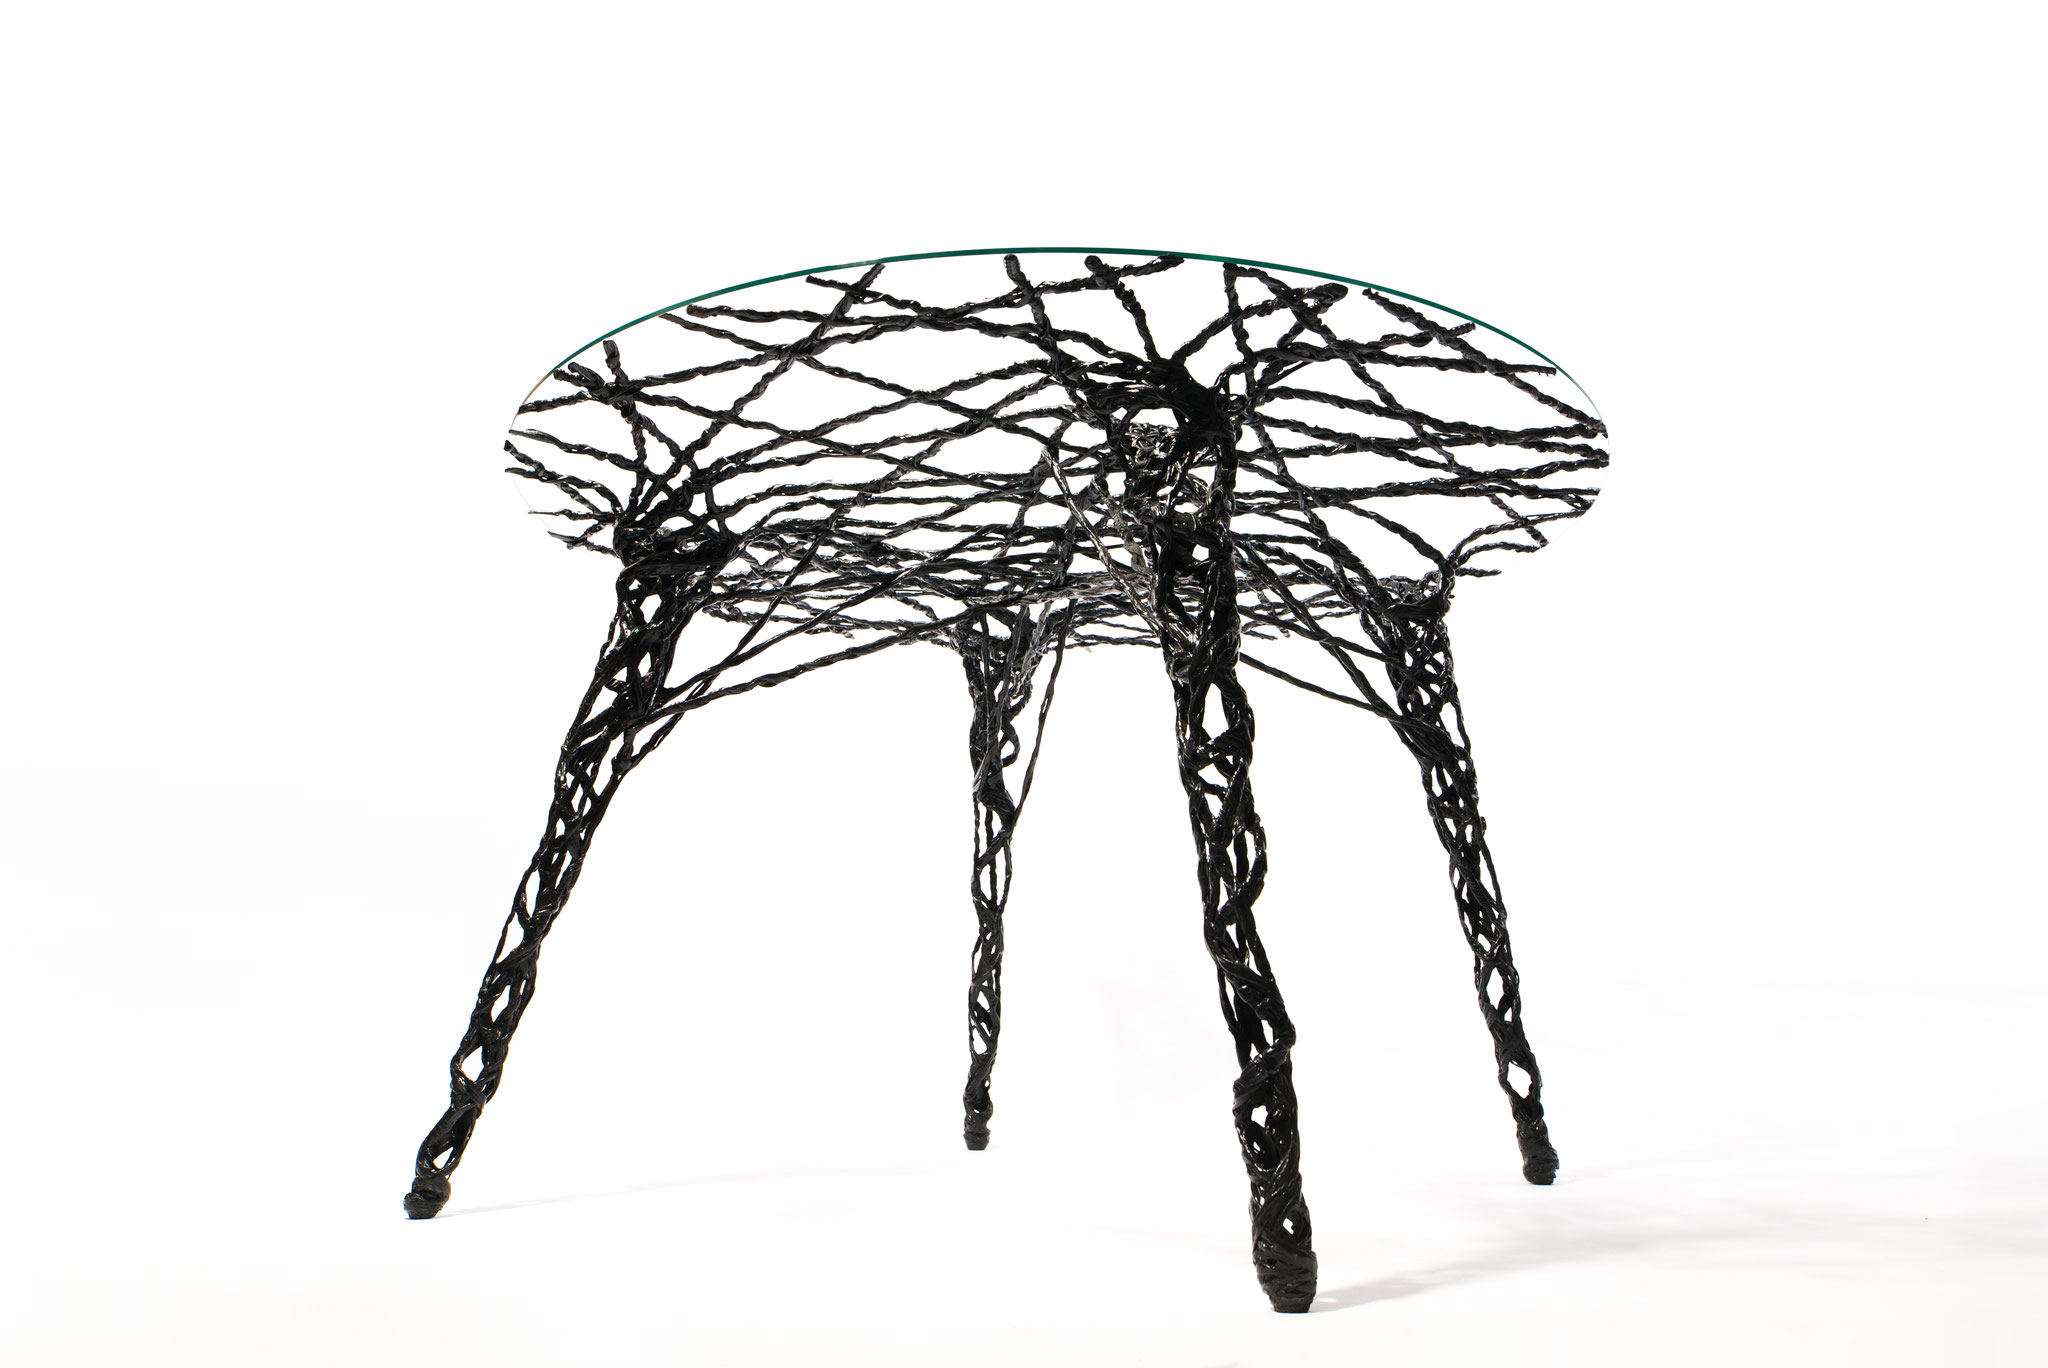 Constructive expressionism table, made out of carbon fiber and epoxy resin, H: 75 cm, W: 125cm, L: 125cm